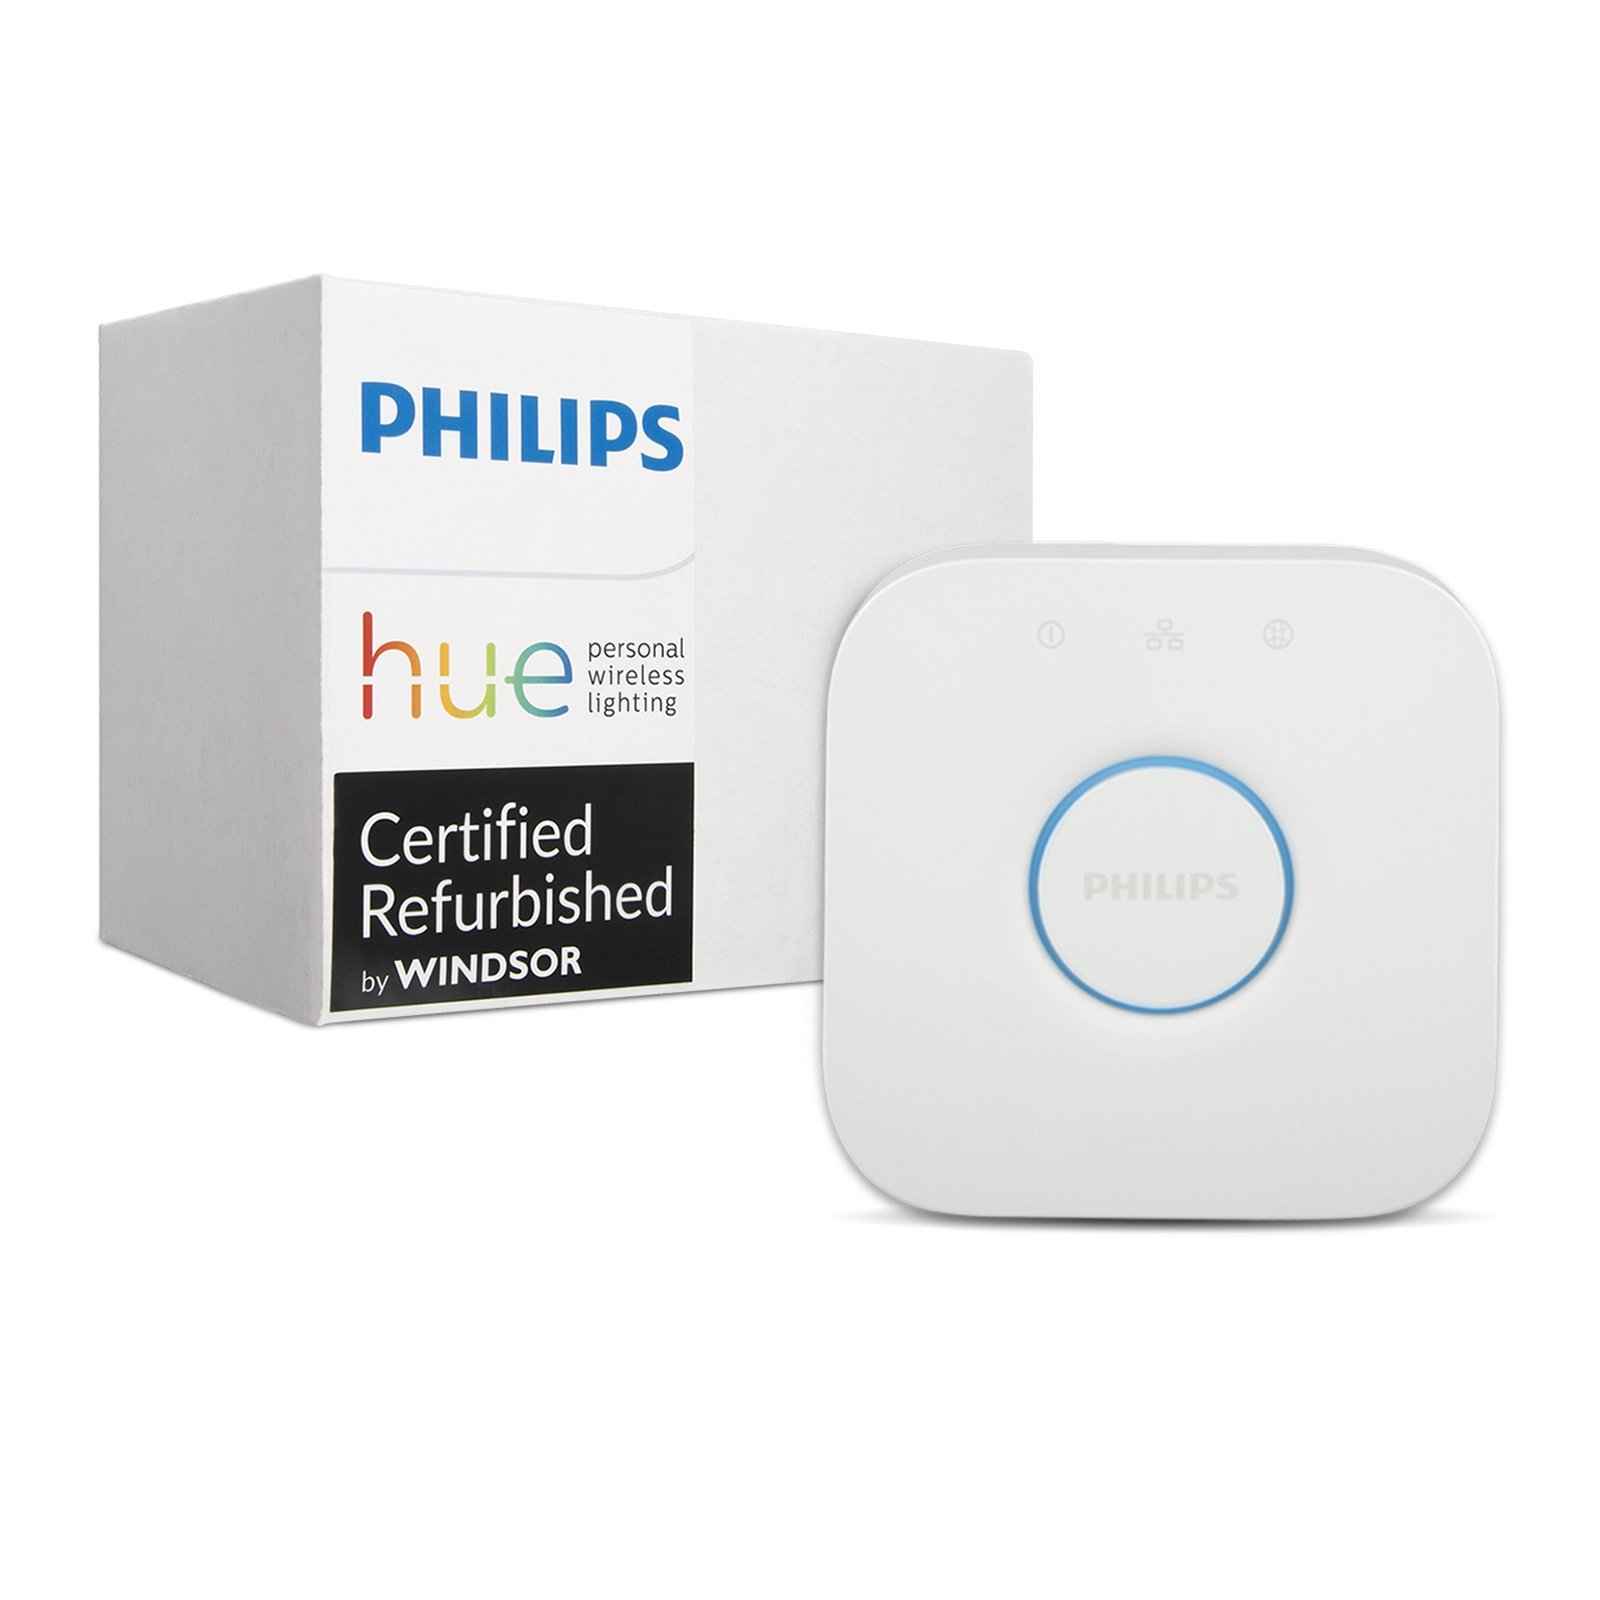 Philips Hue Smart Bridge - 2nd Generation, Latest Model - Works with Alexa, Apple HomeKit and Google Assistant (Certified Refurbished) by Philips